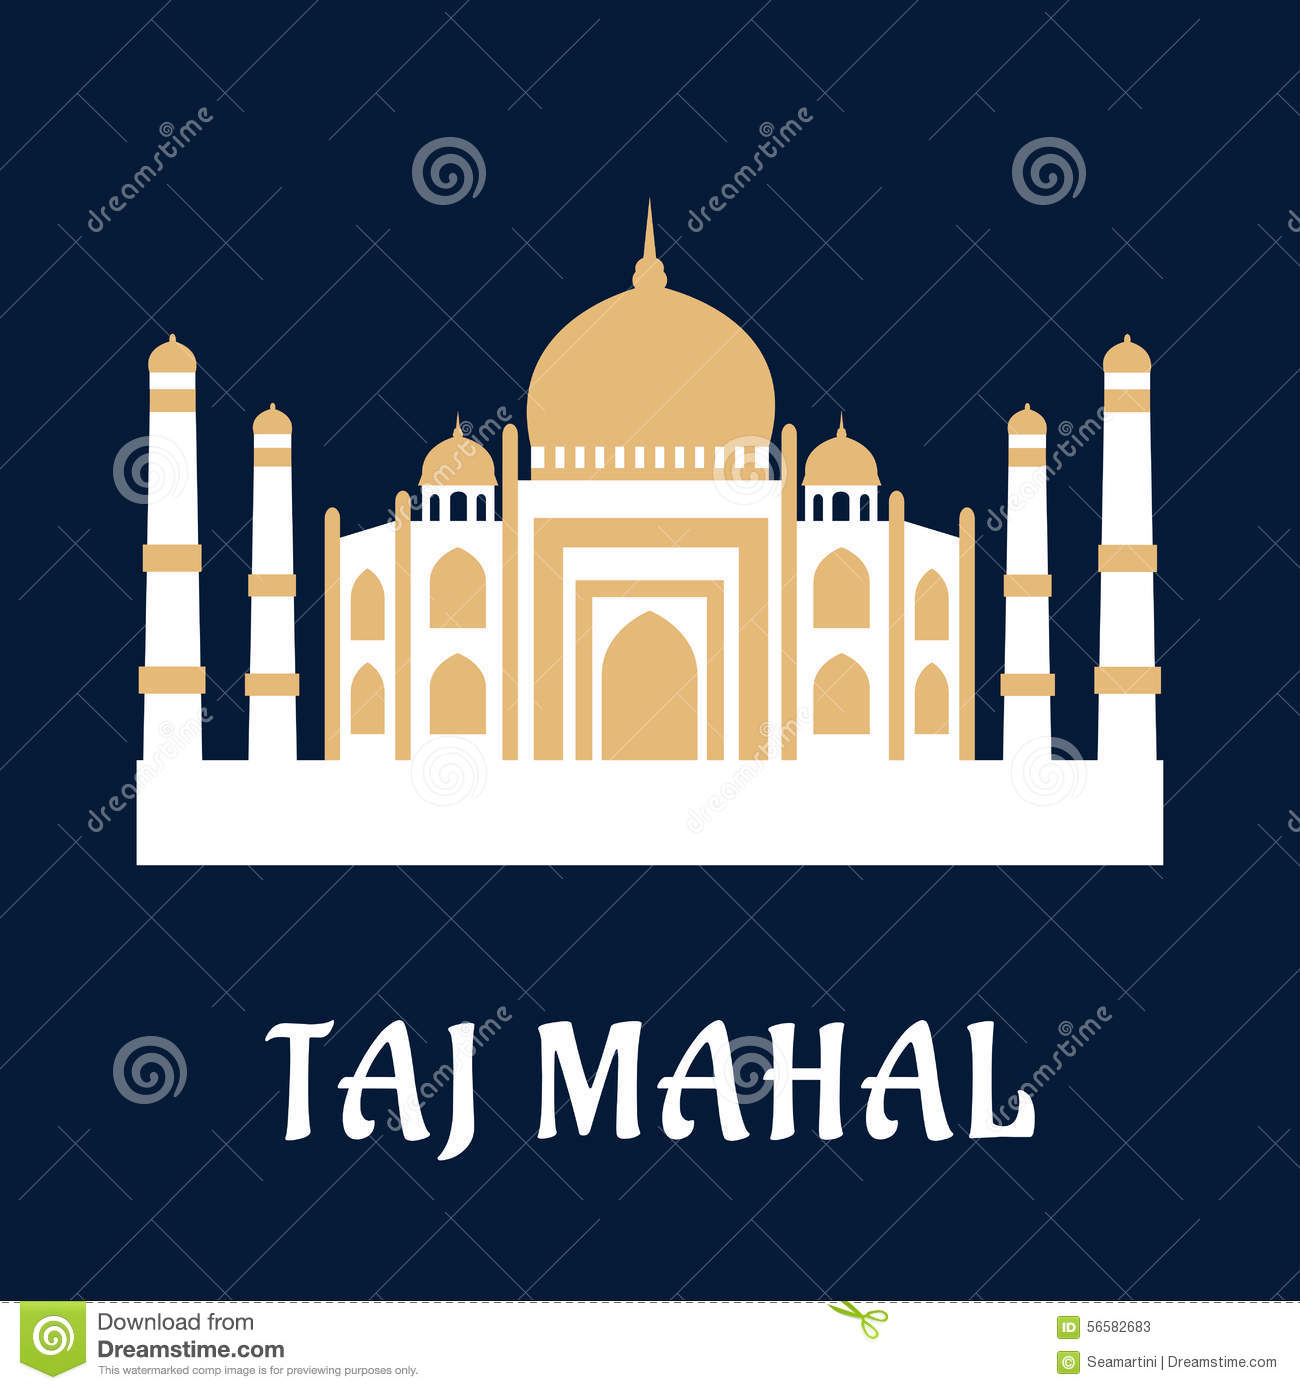 Taj mahal ki history hindi